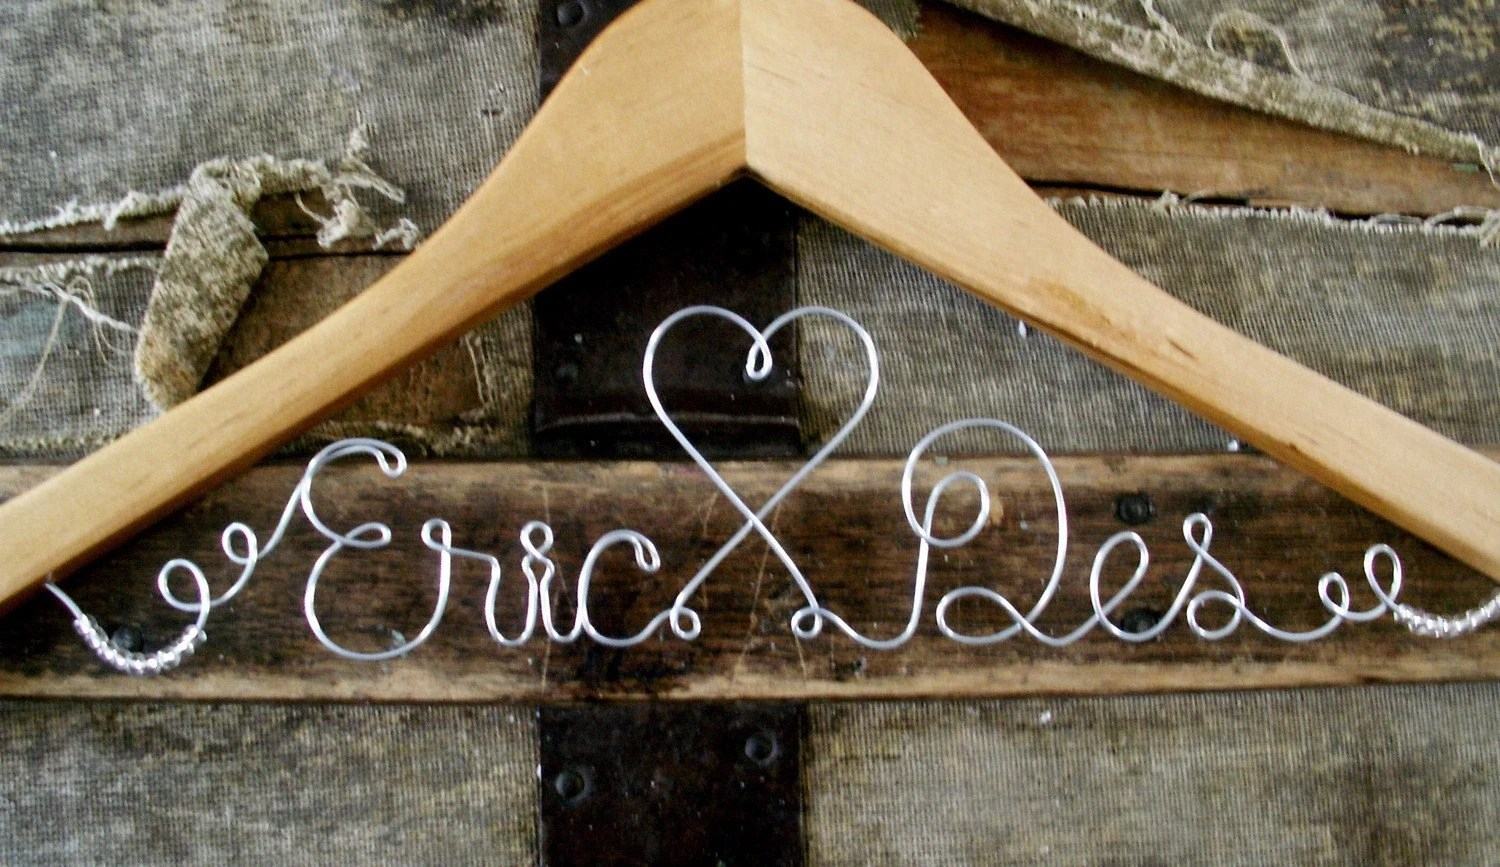 show me your personalized wedding hangers lt3 wedding hangers Reply